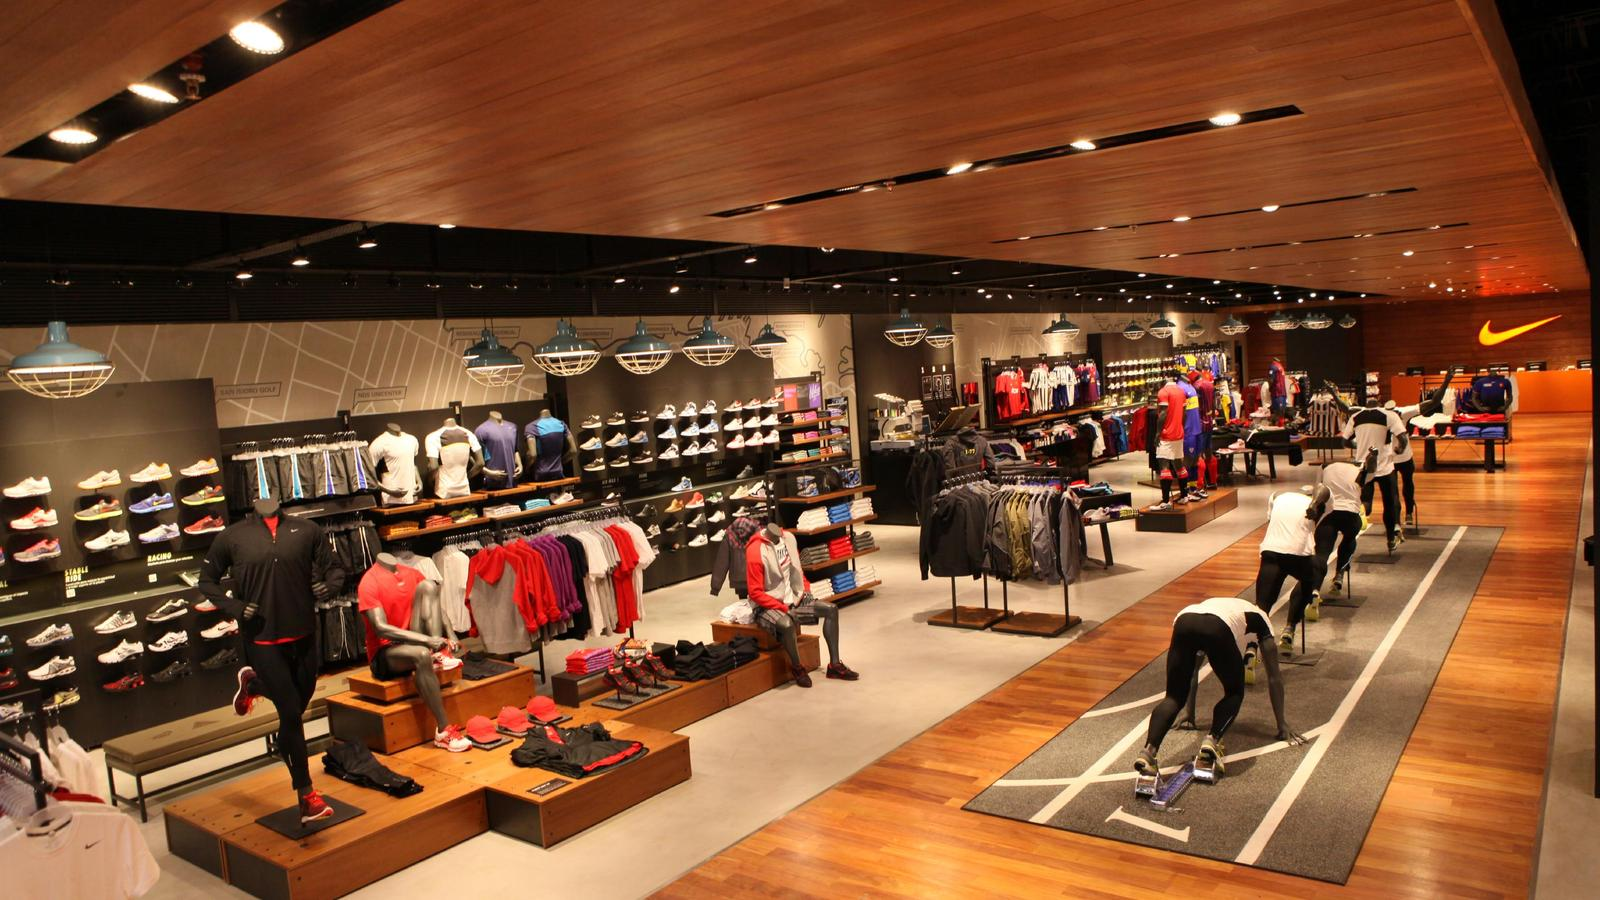 aluminio todos los días seguro  Nike store in Argentina earns gold LEED certification - Nike News